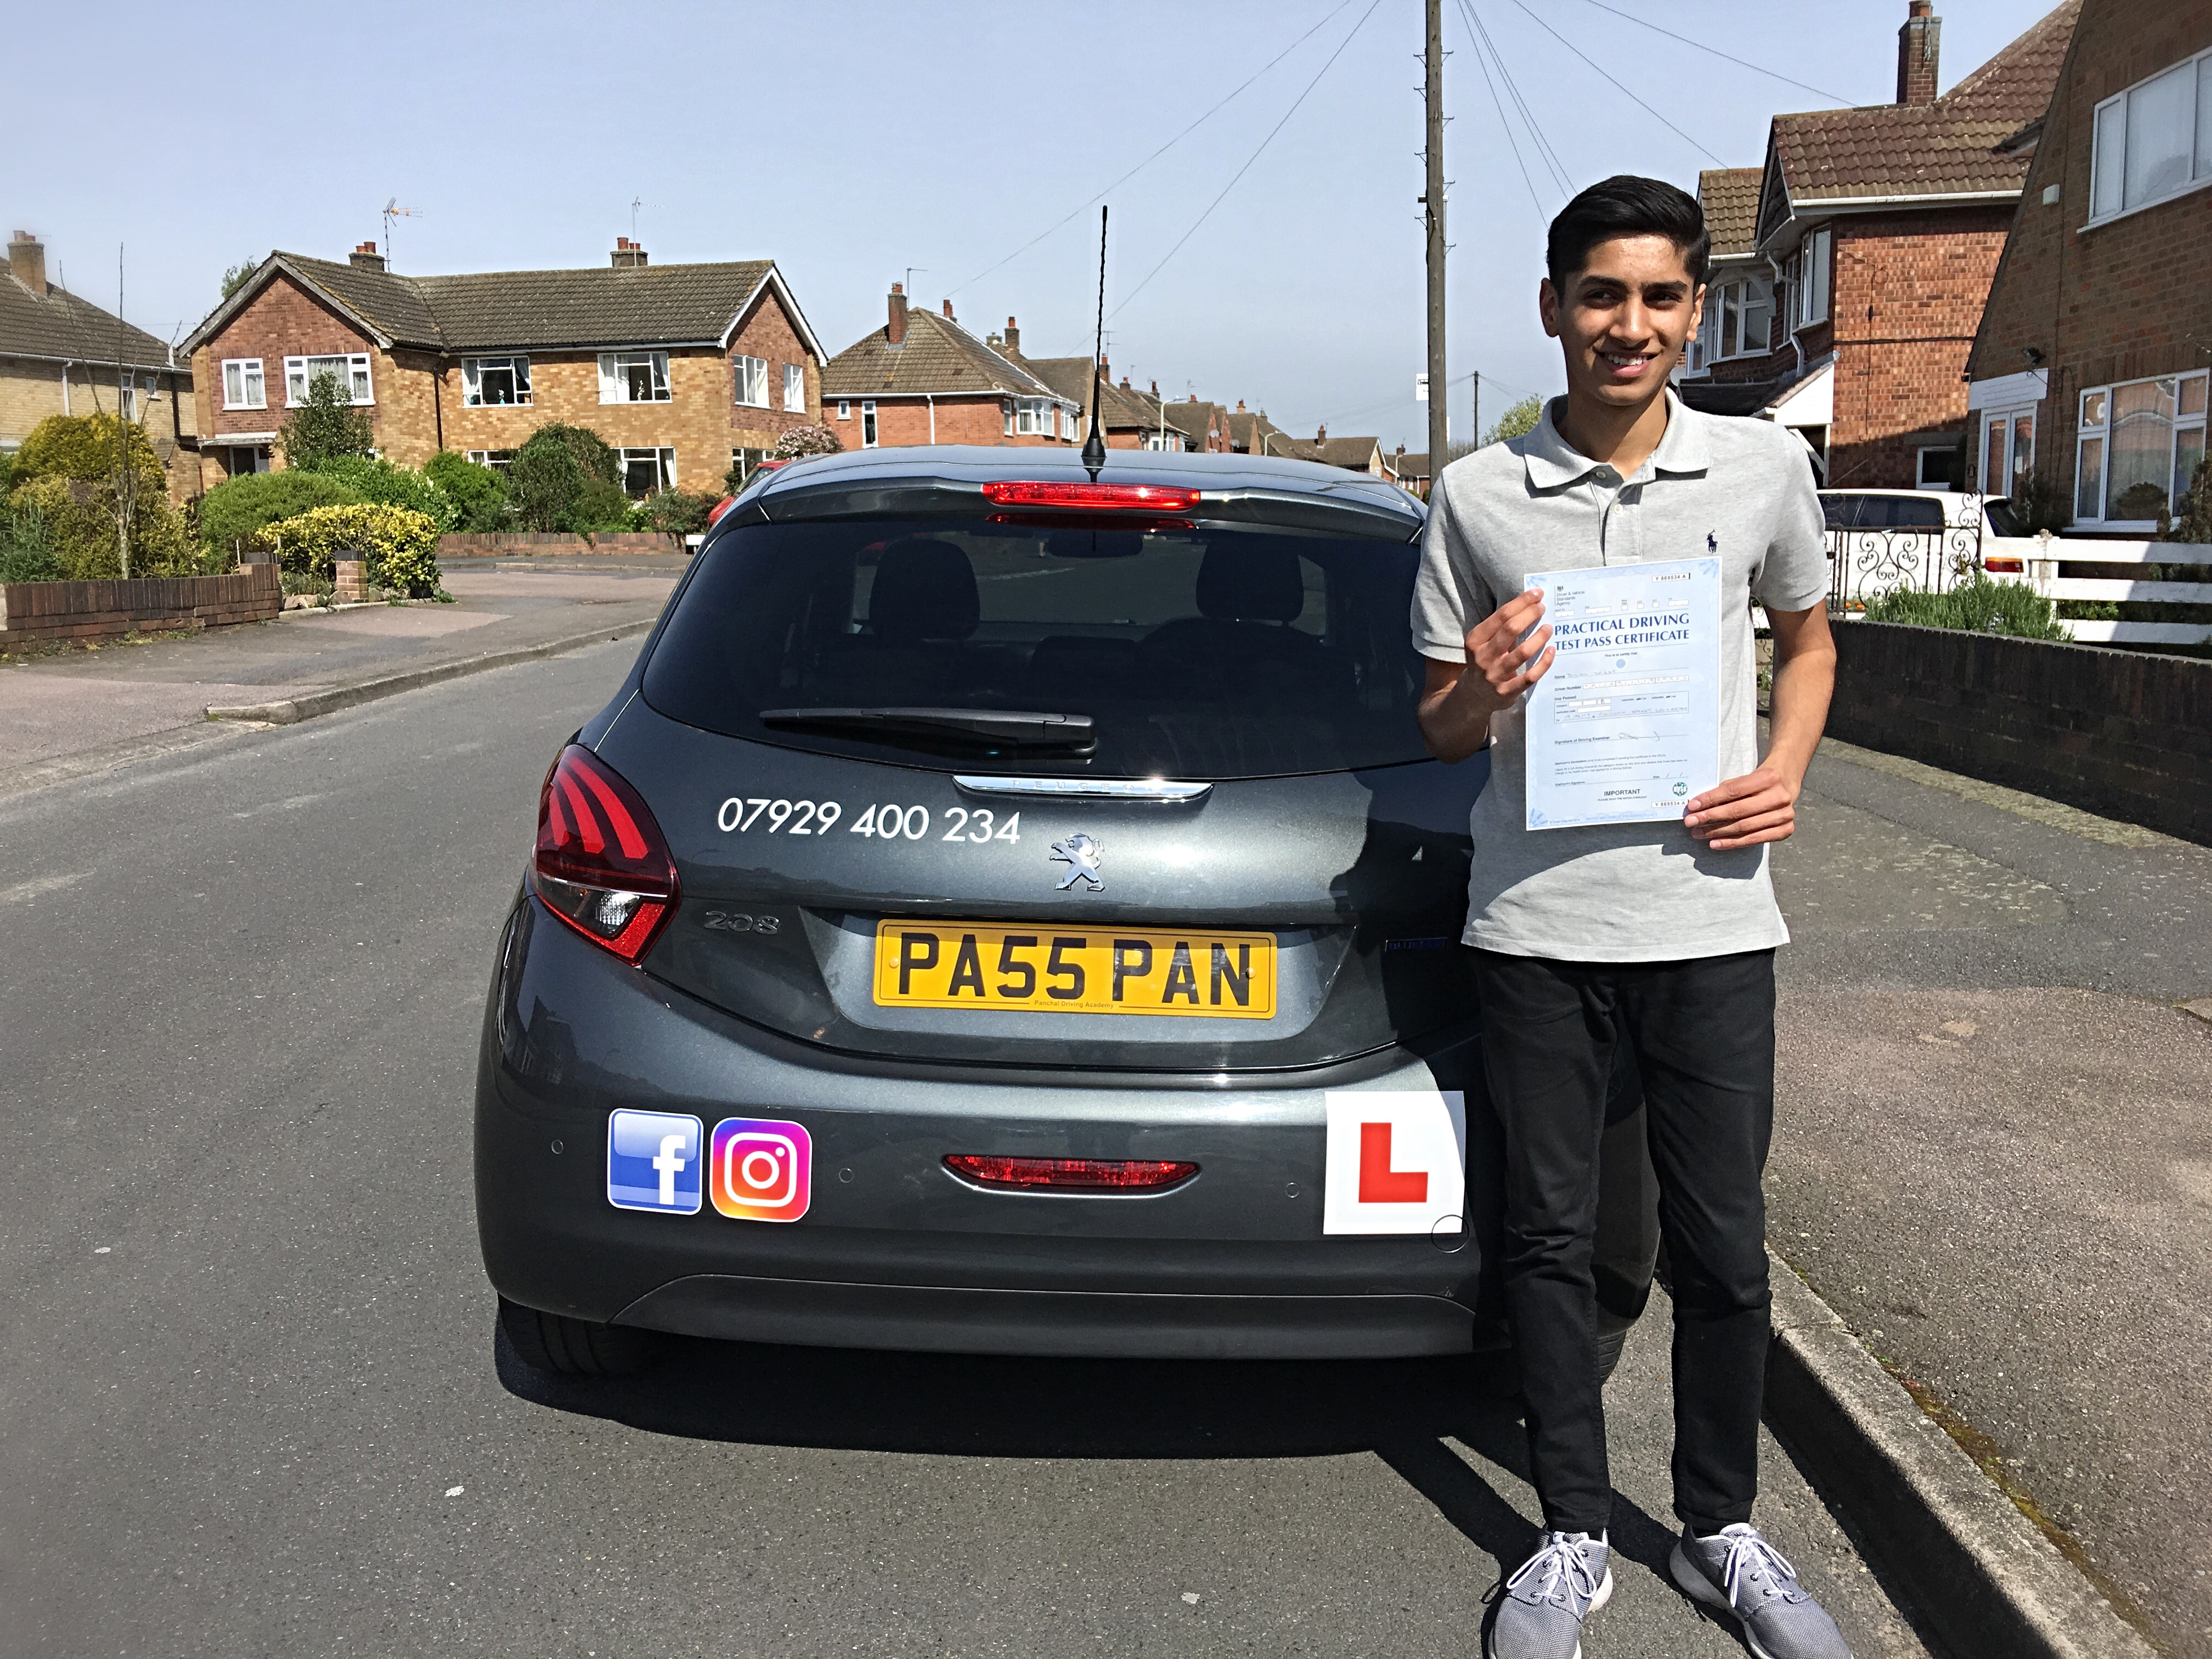 driving lessons leicester - Panchal Driving Academy - Dilan